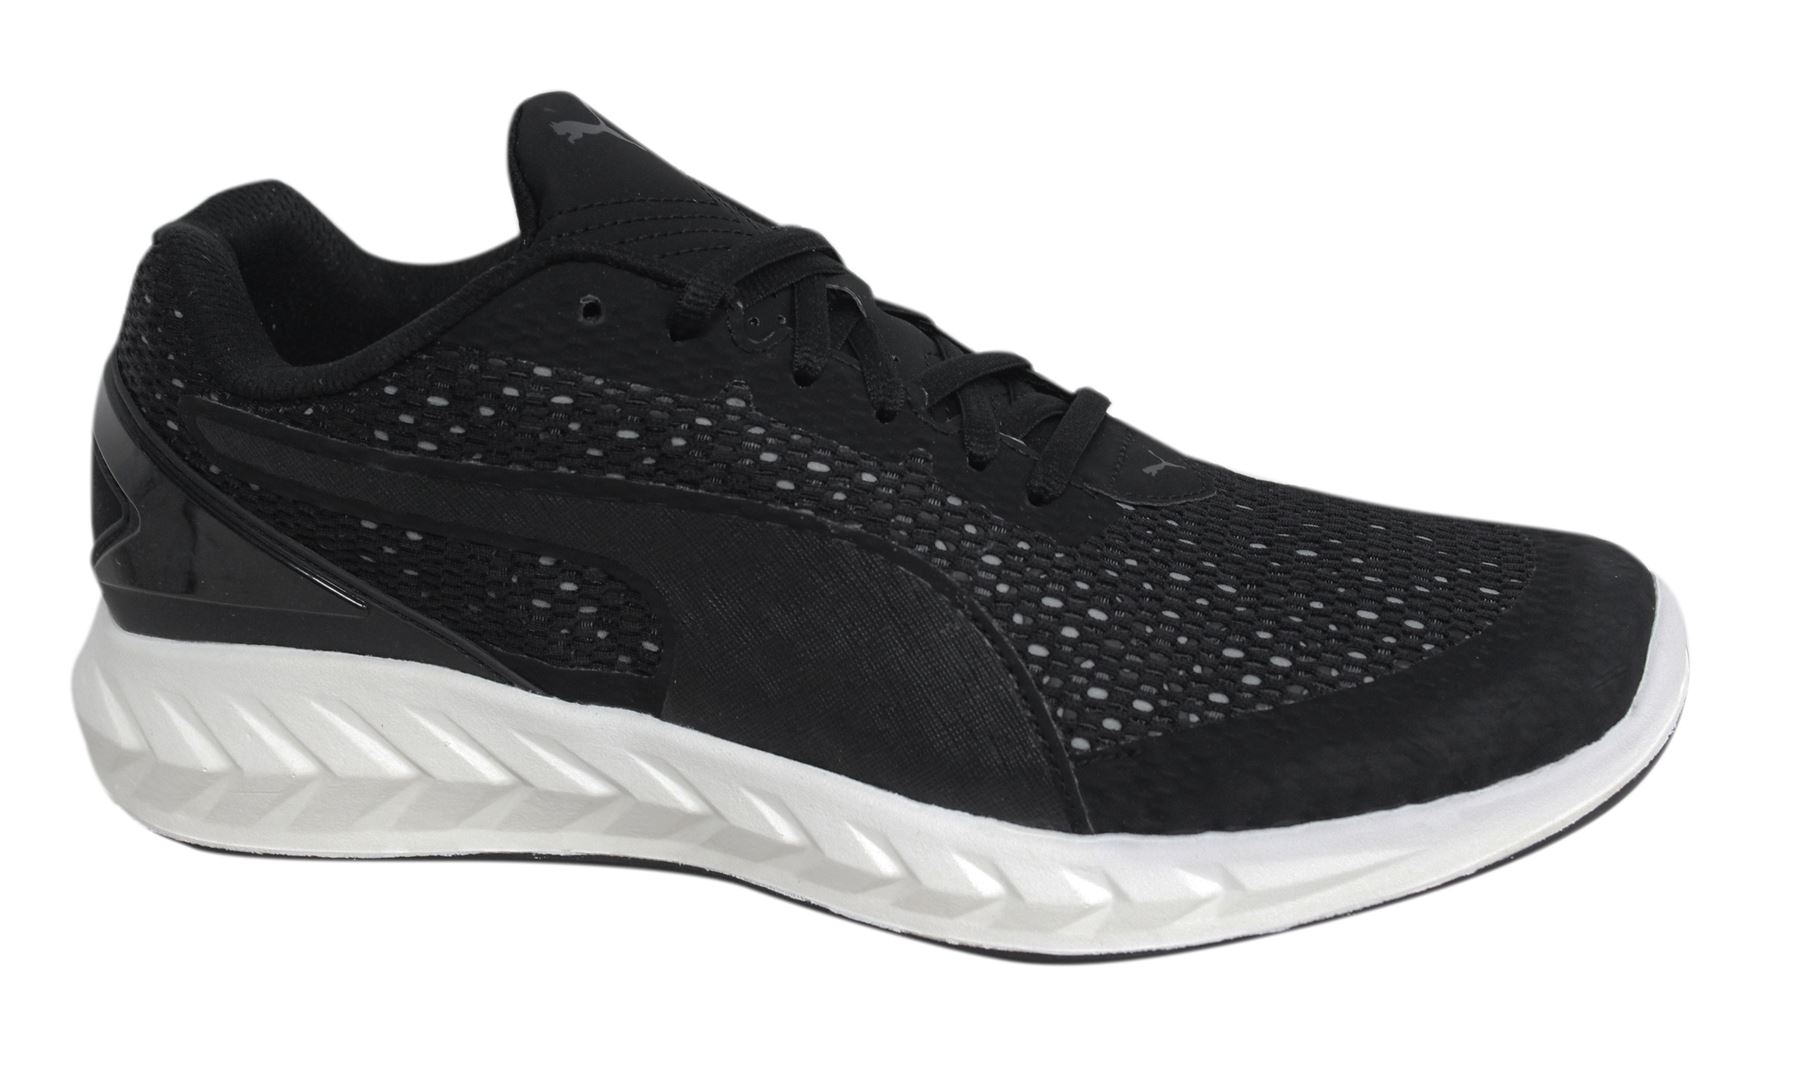 08c50e7f5e8 Puma Ignite Ultimate Layered Mens Lace Up Trainers Running Shoes 188999 02  D116